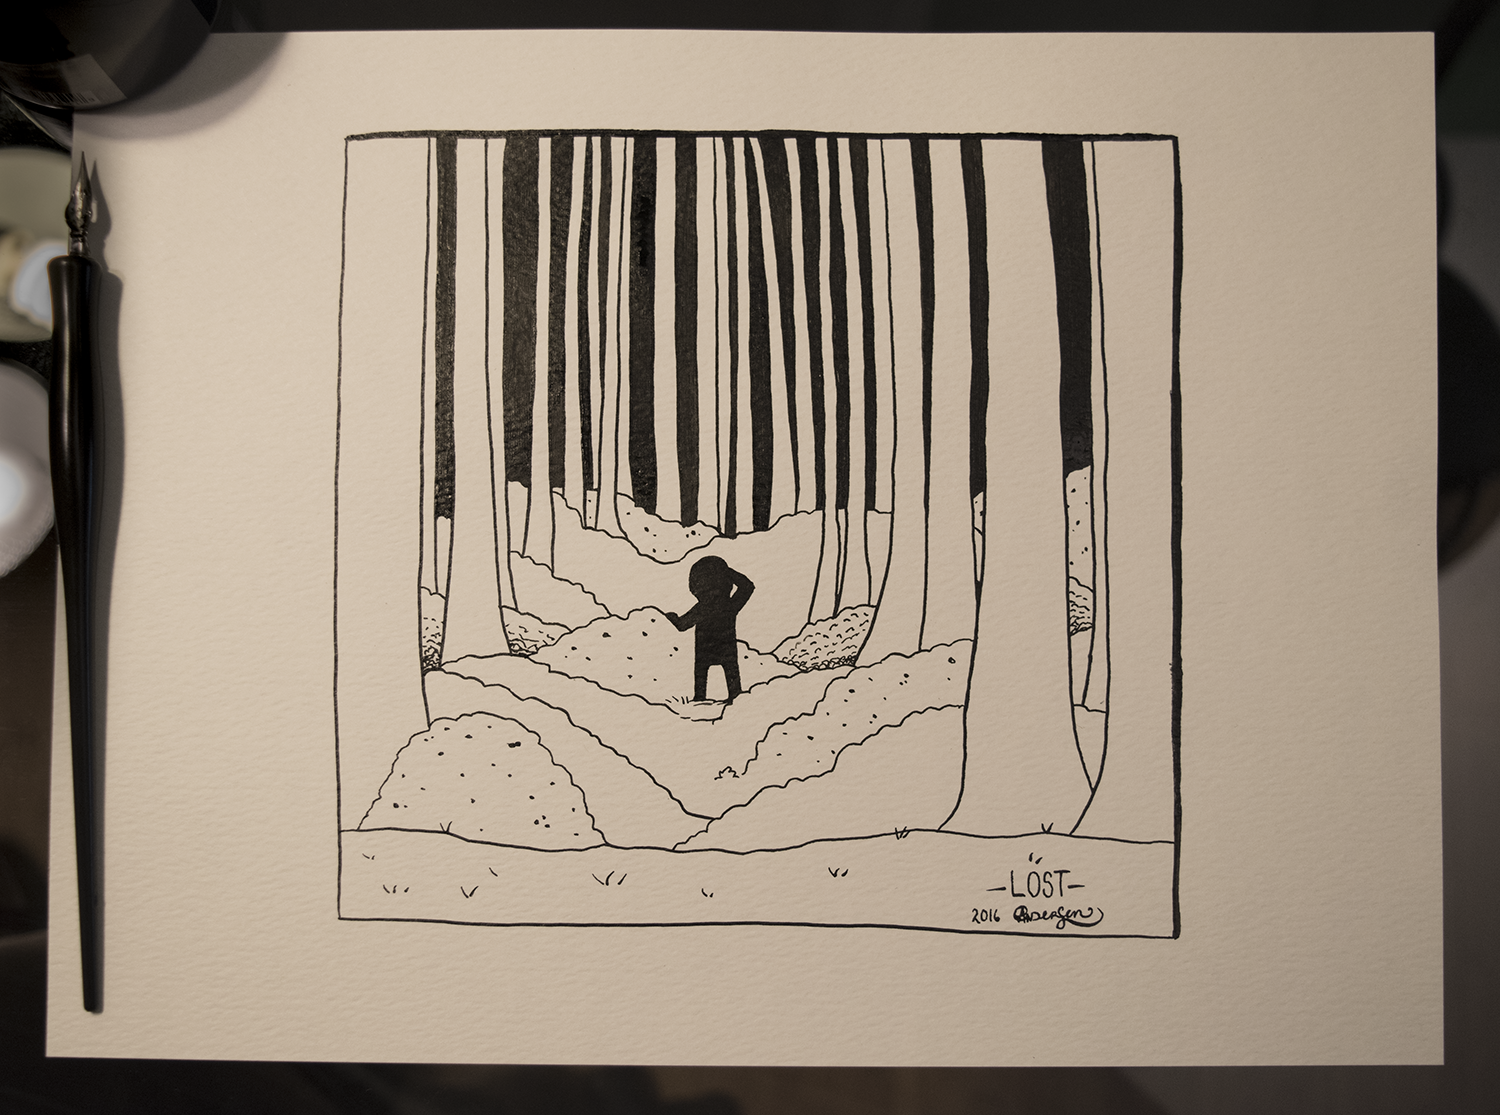 Original piece as shown. Black ink, on 9x12inches 90lb acid-free white paper.